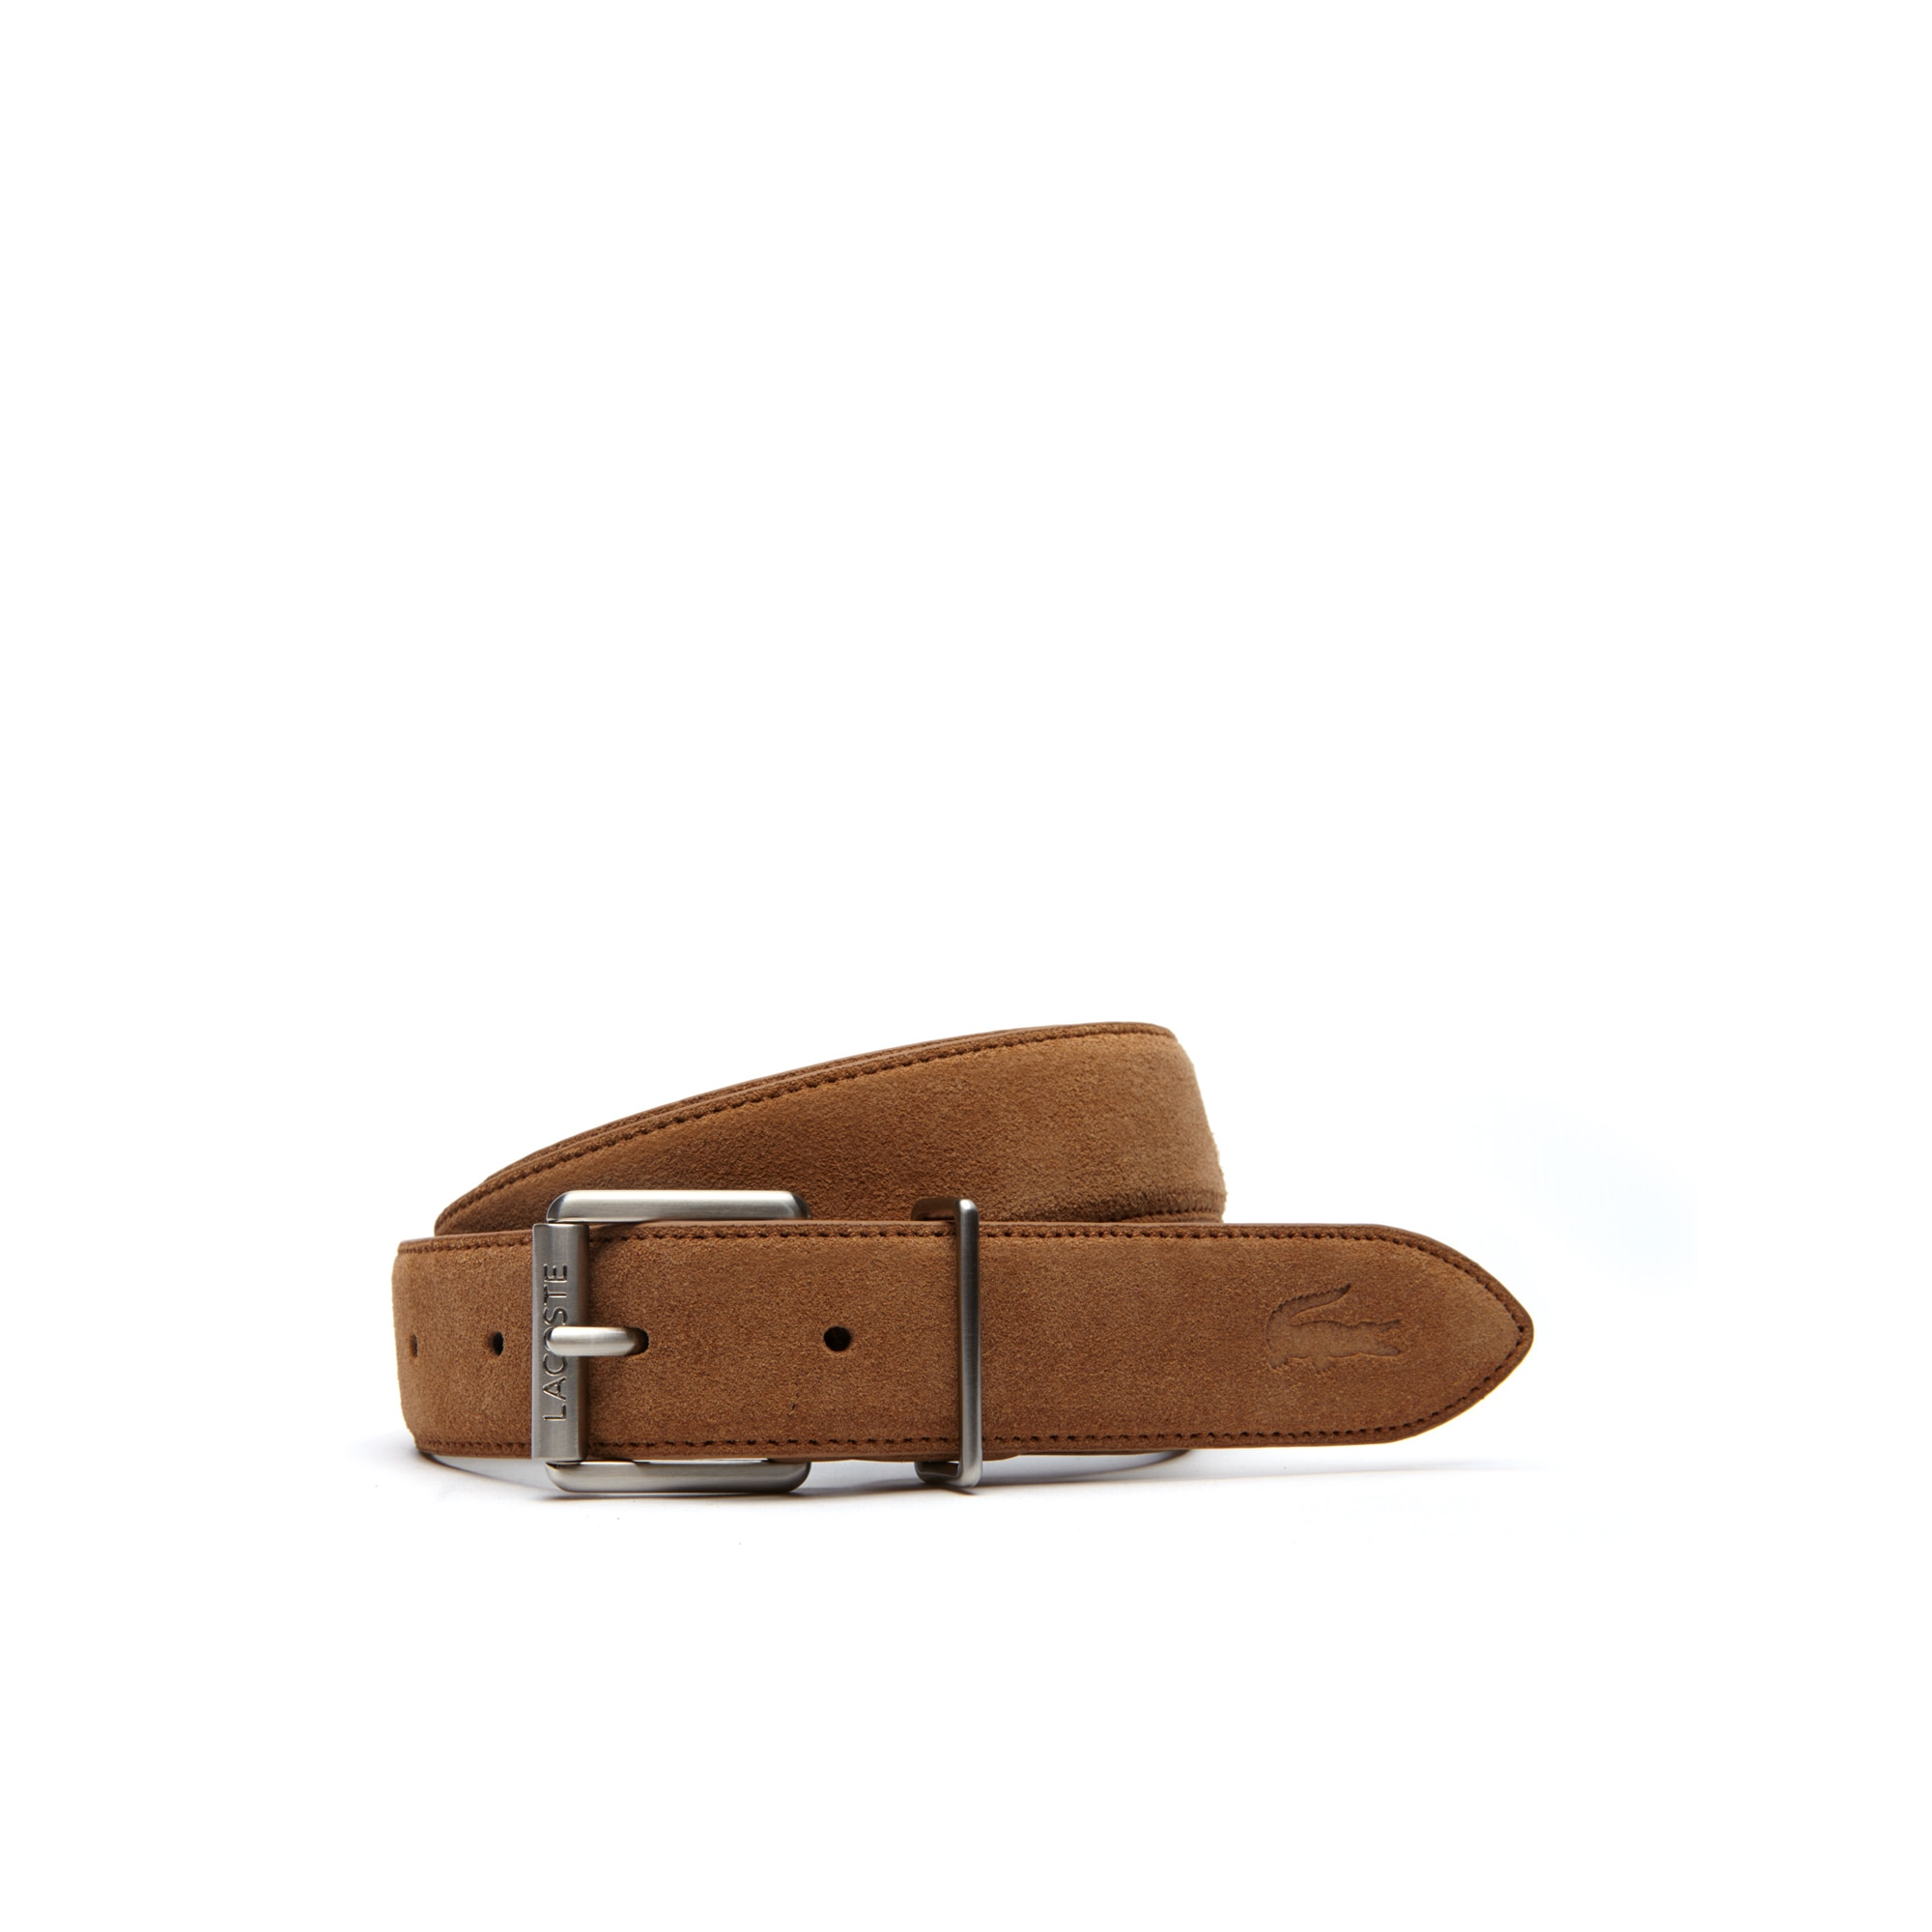 Men's Tongue Buckle Suede-Style Leather Belt